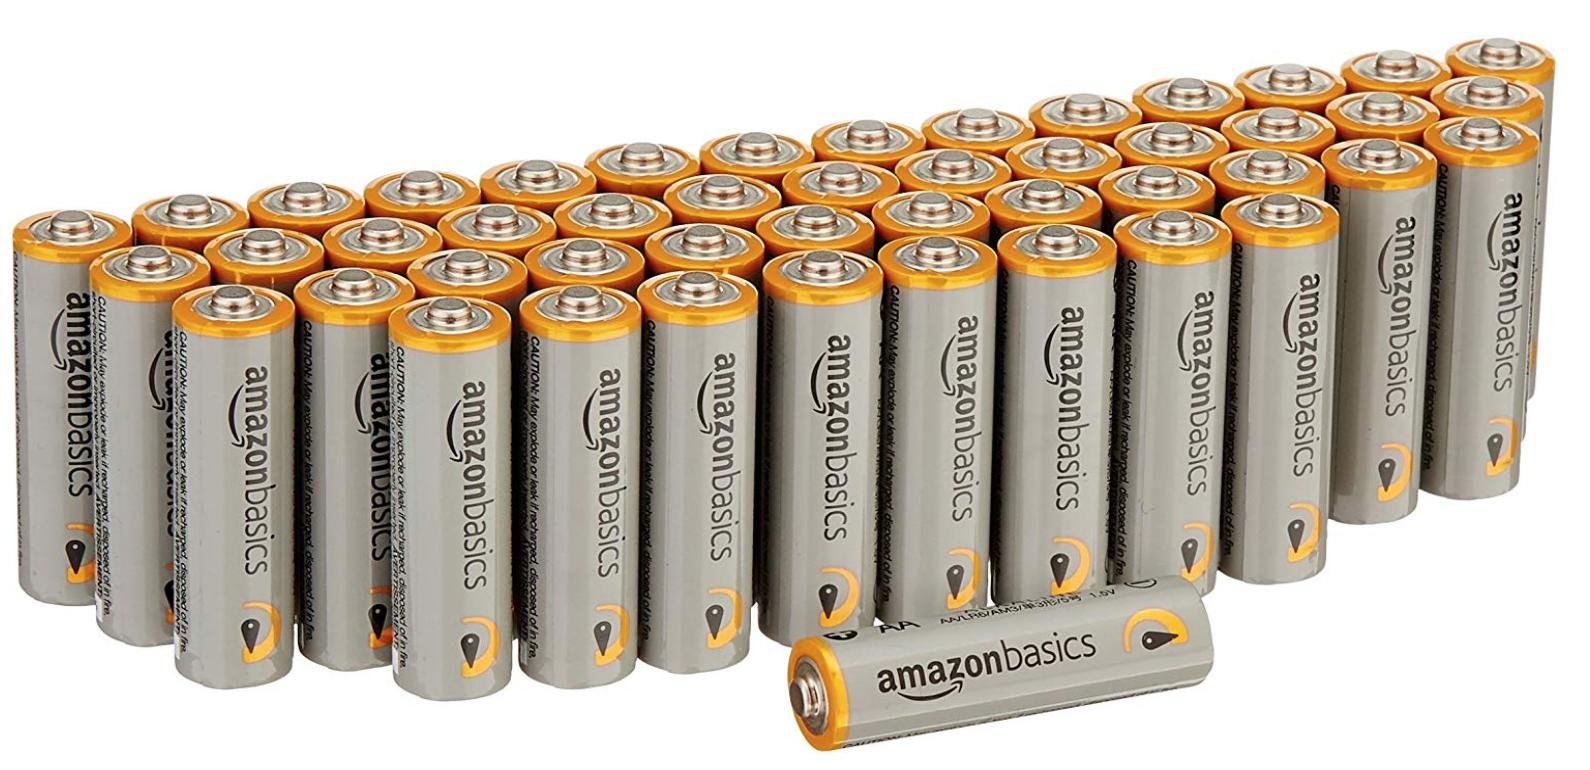 A 48 pack of Amazon batteries